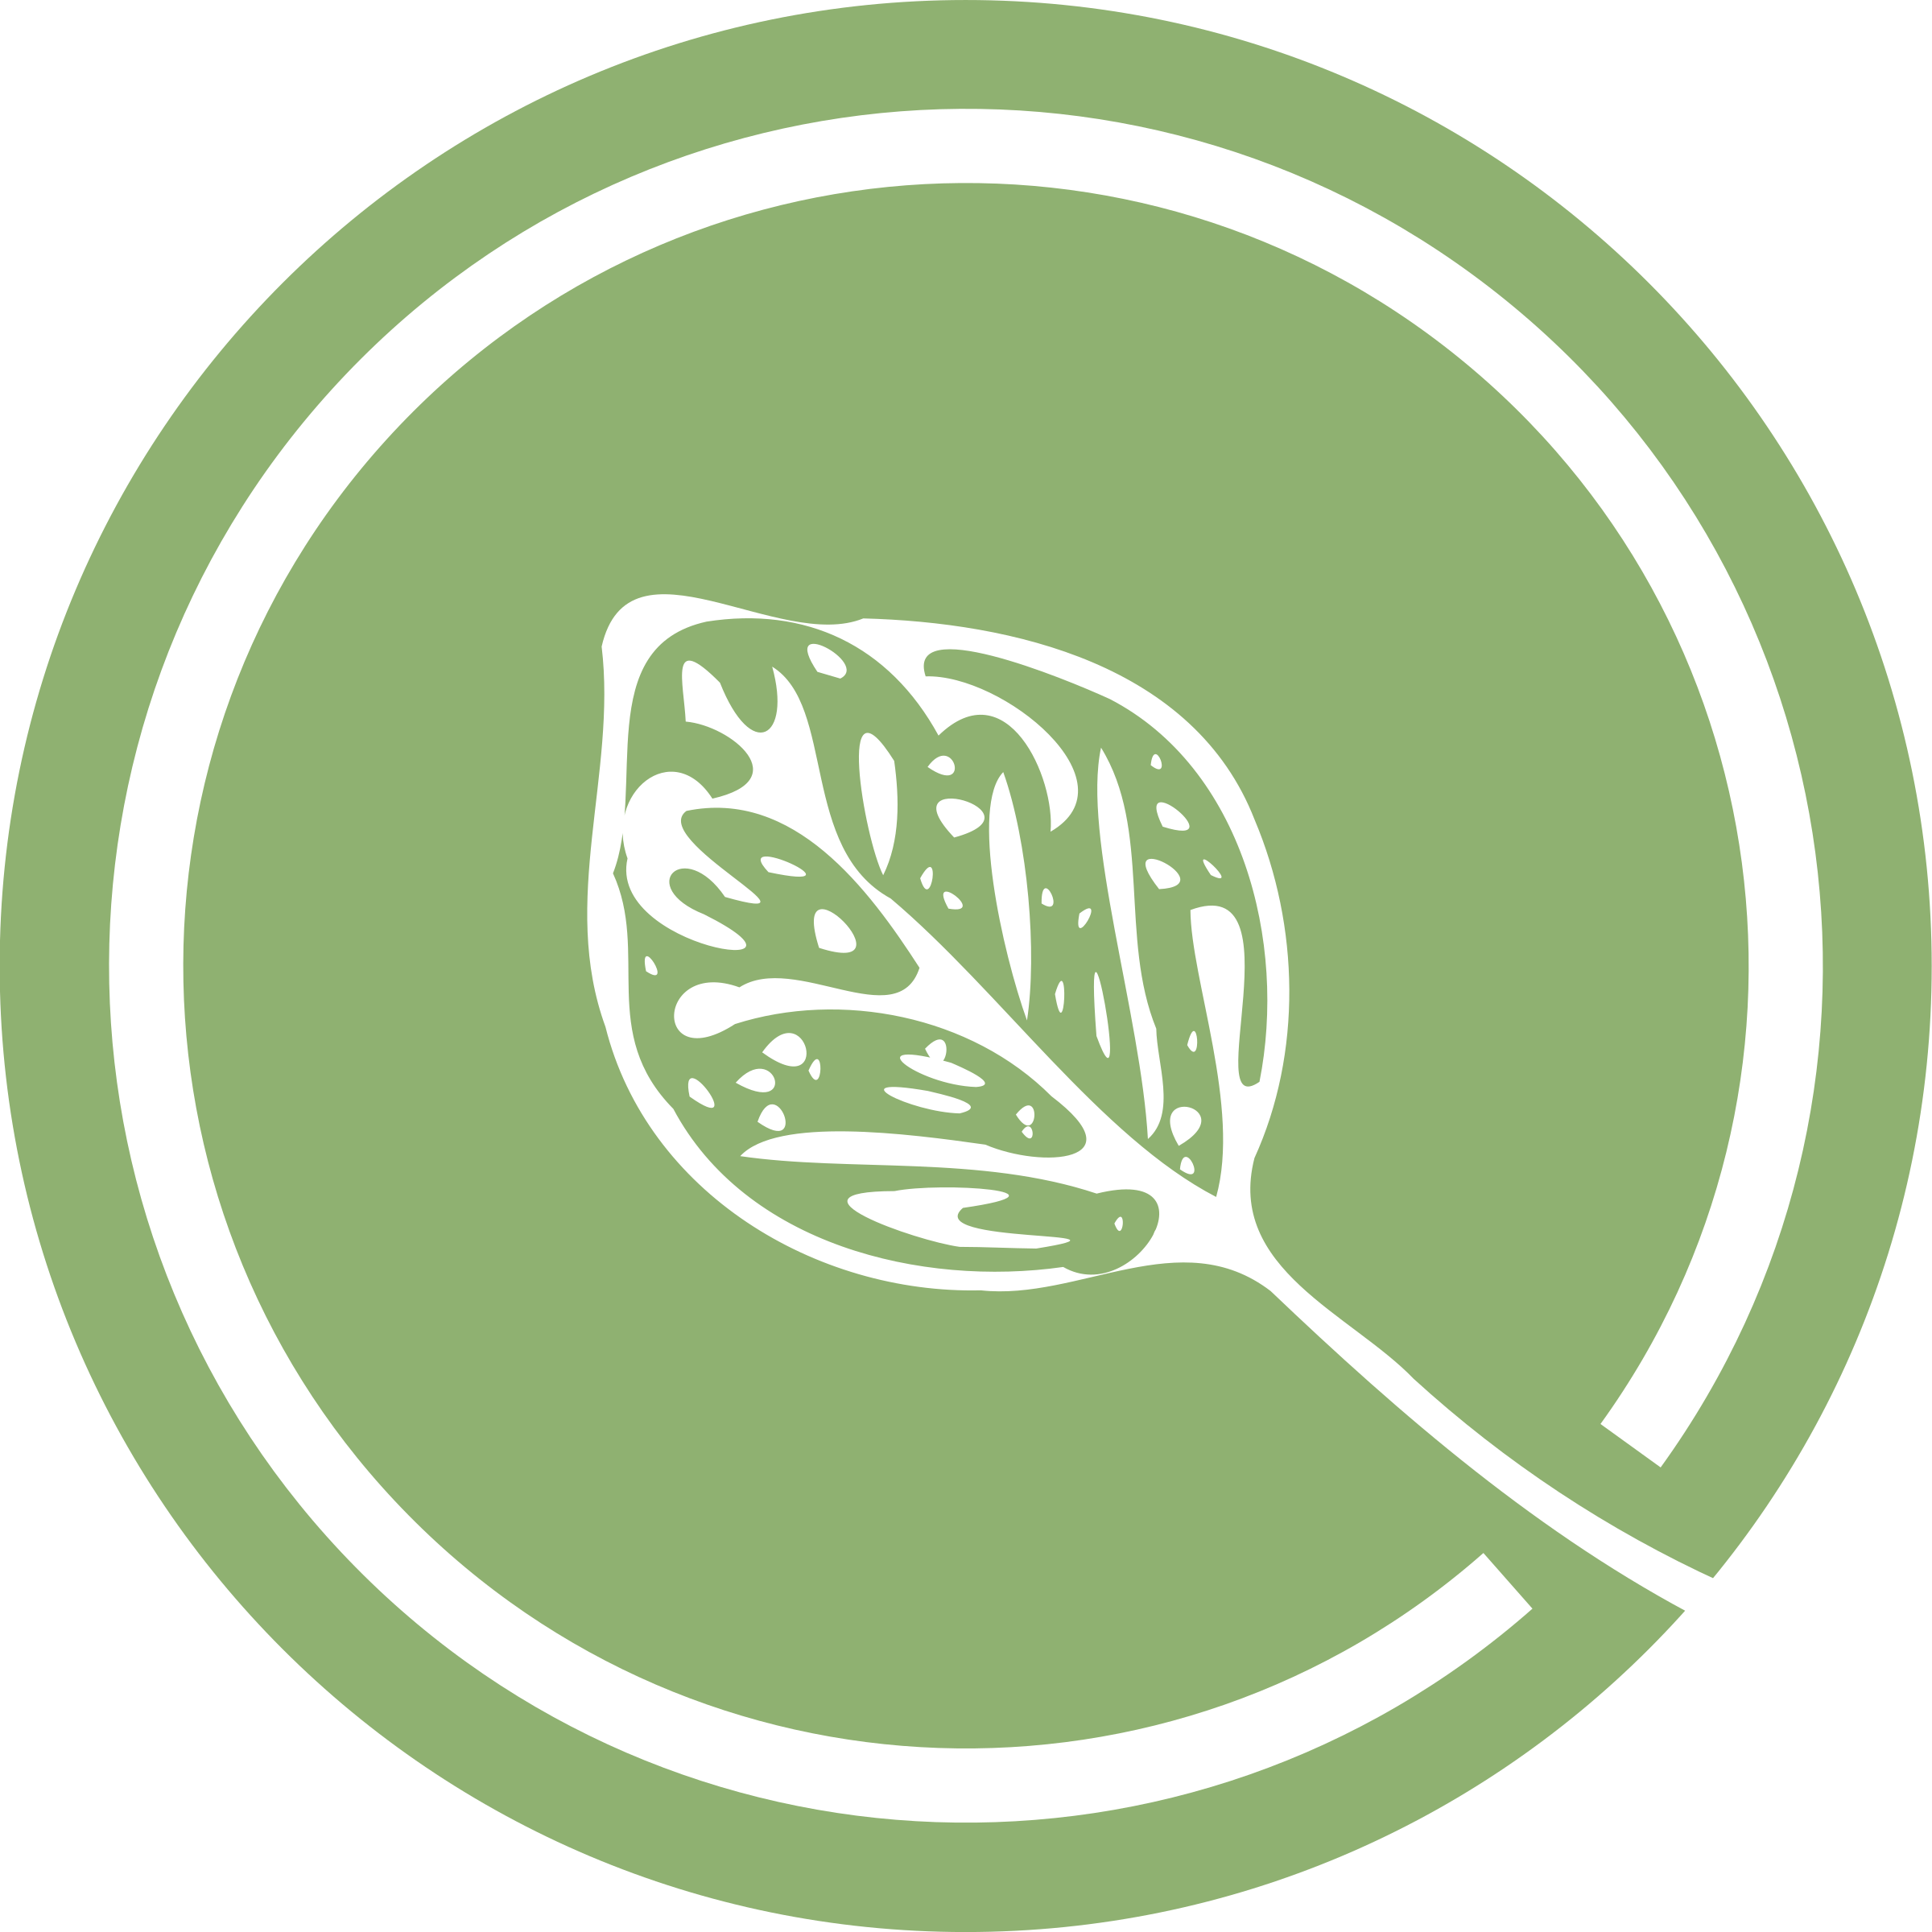 Leaf logo png. Icons free and downloads